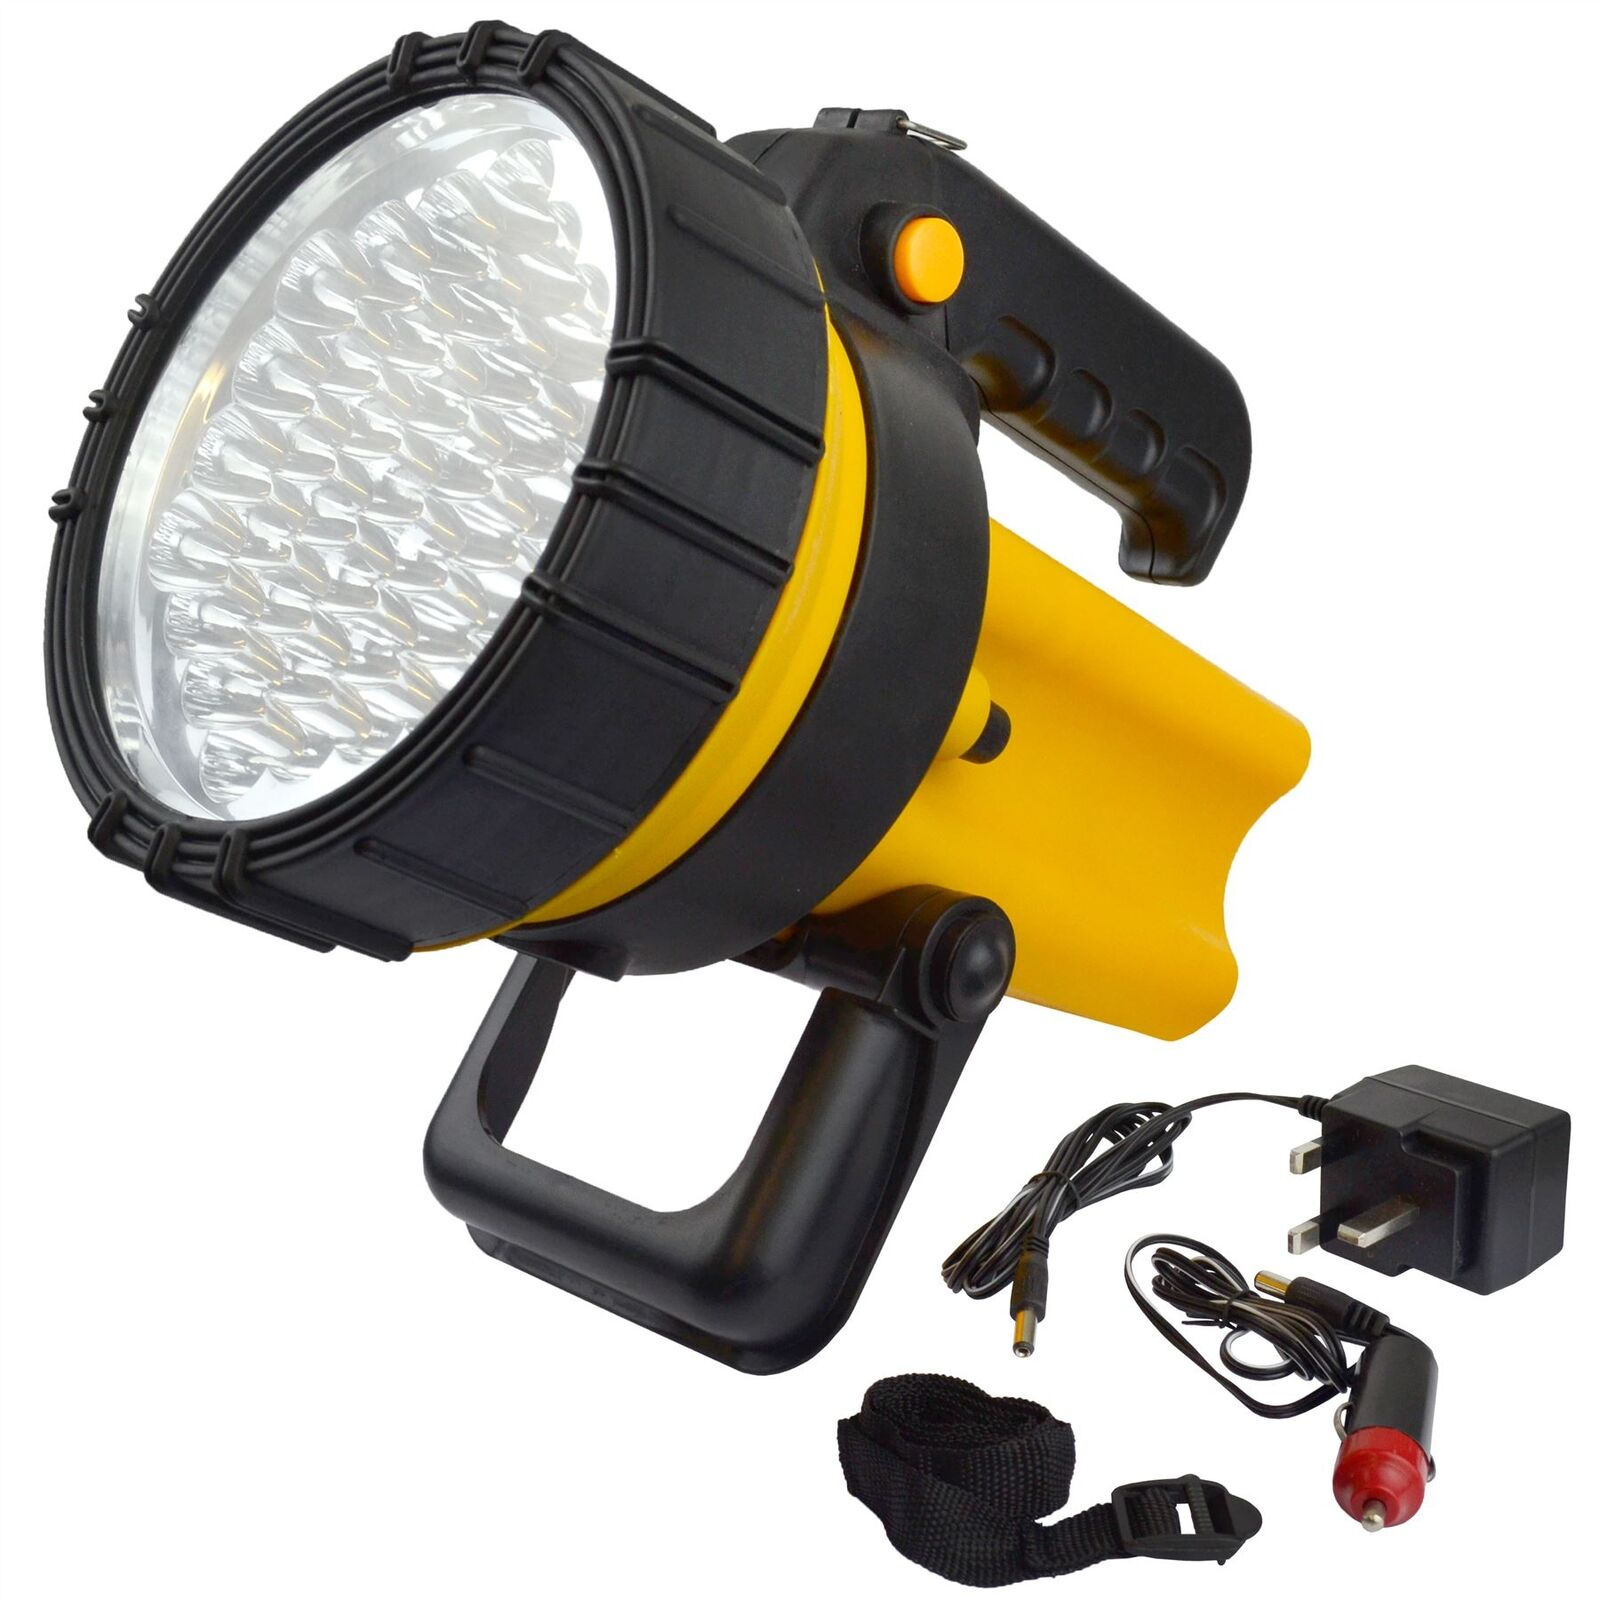 37 LED Rechargeable Lantern Work Light Torch Spotlight Lamp TE650